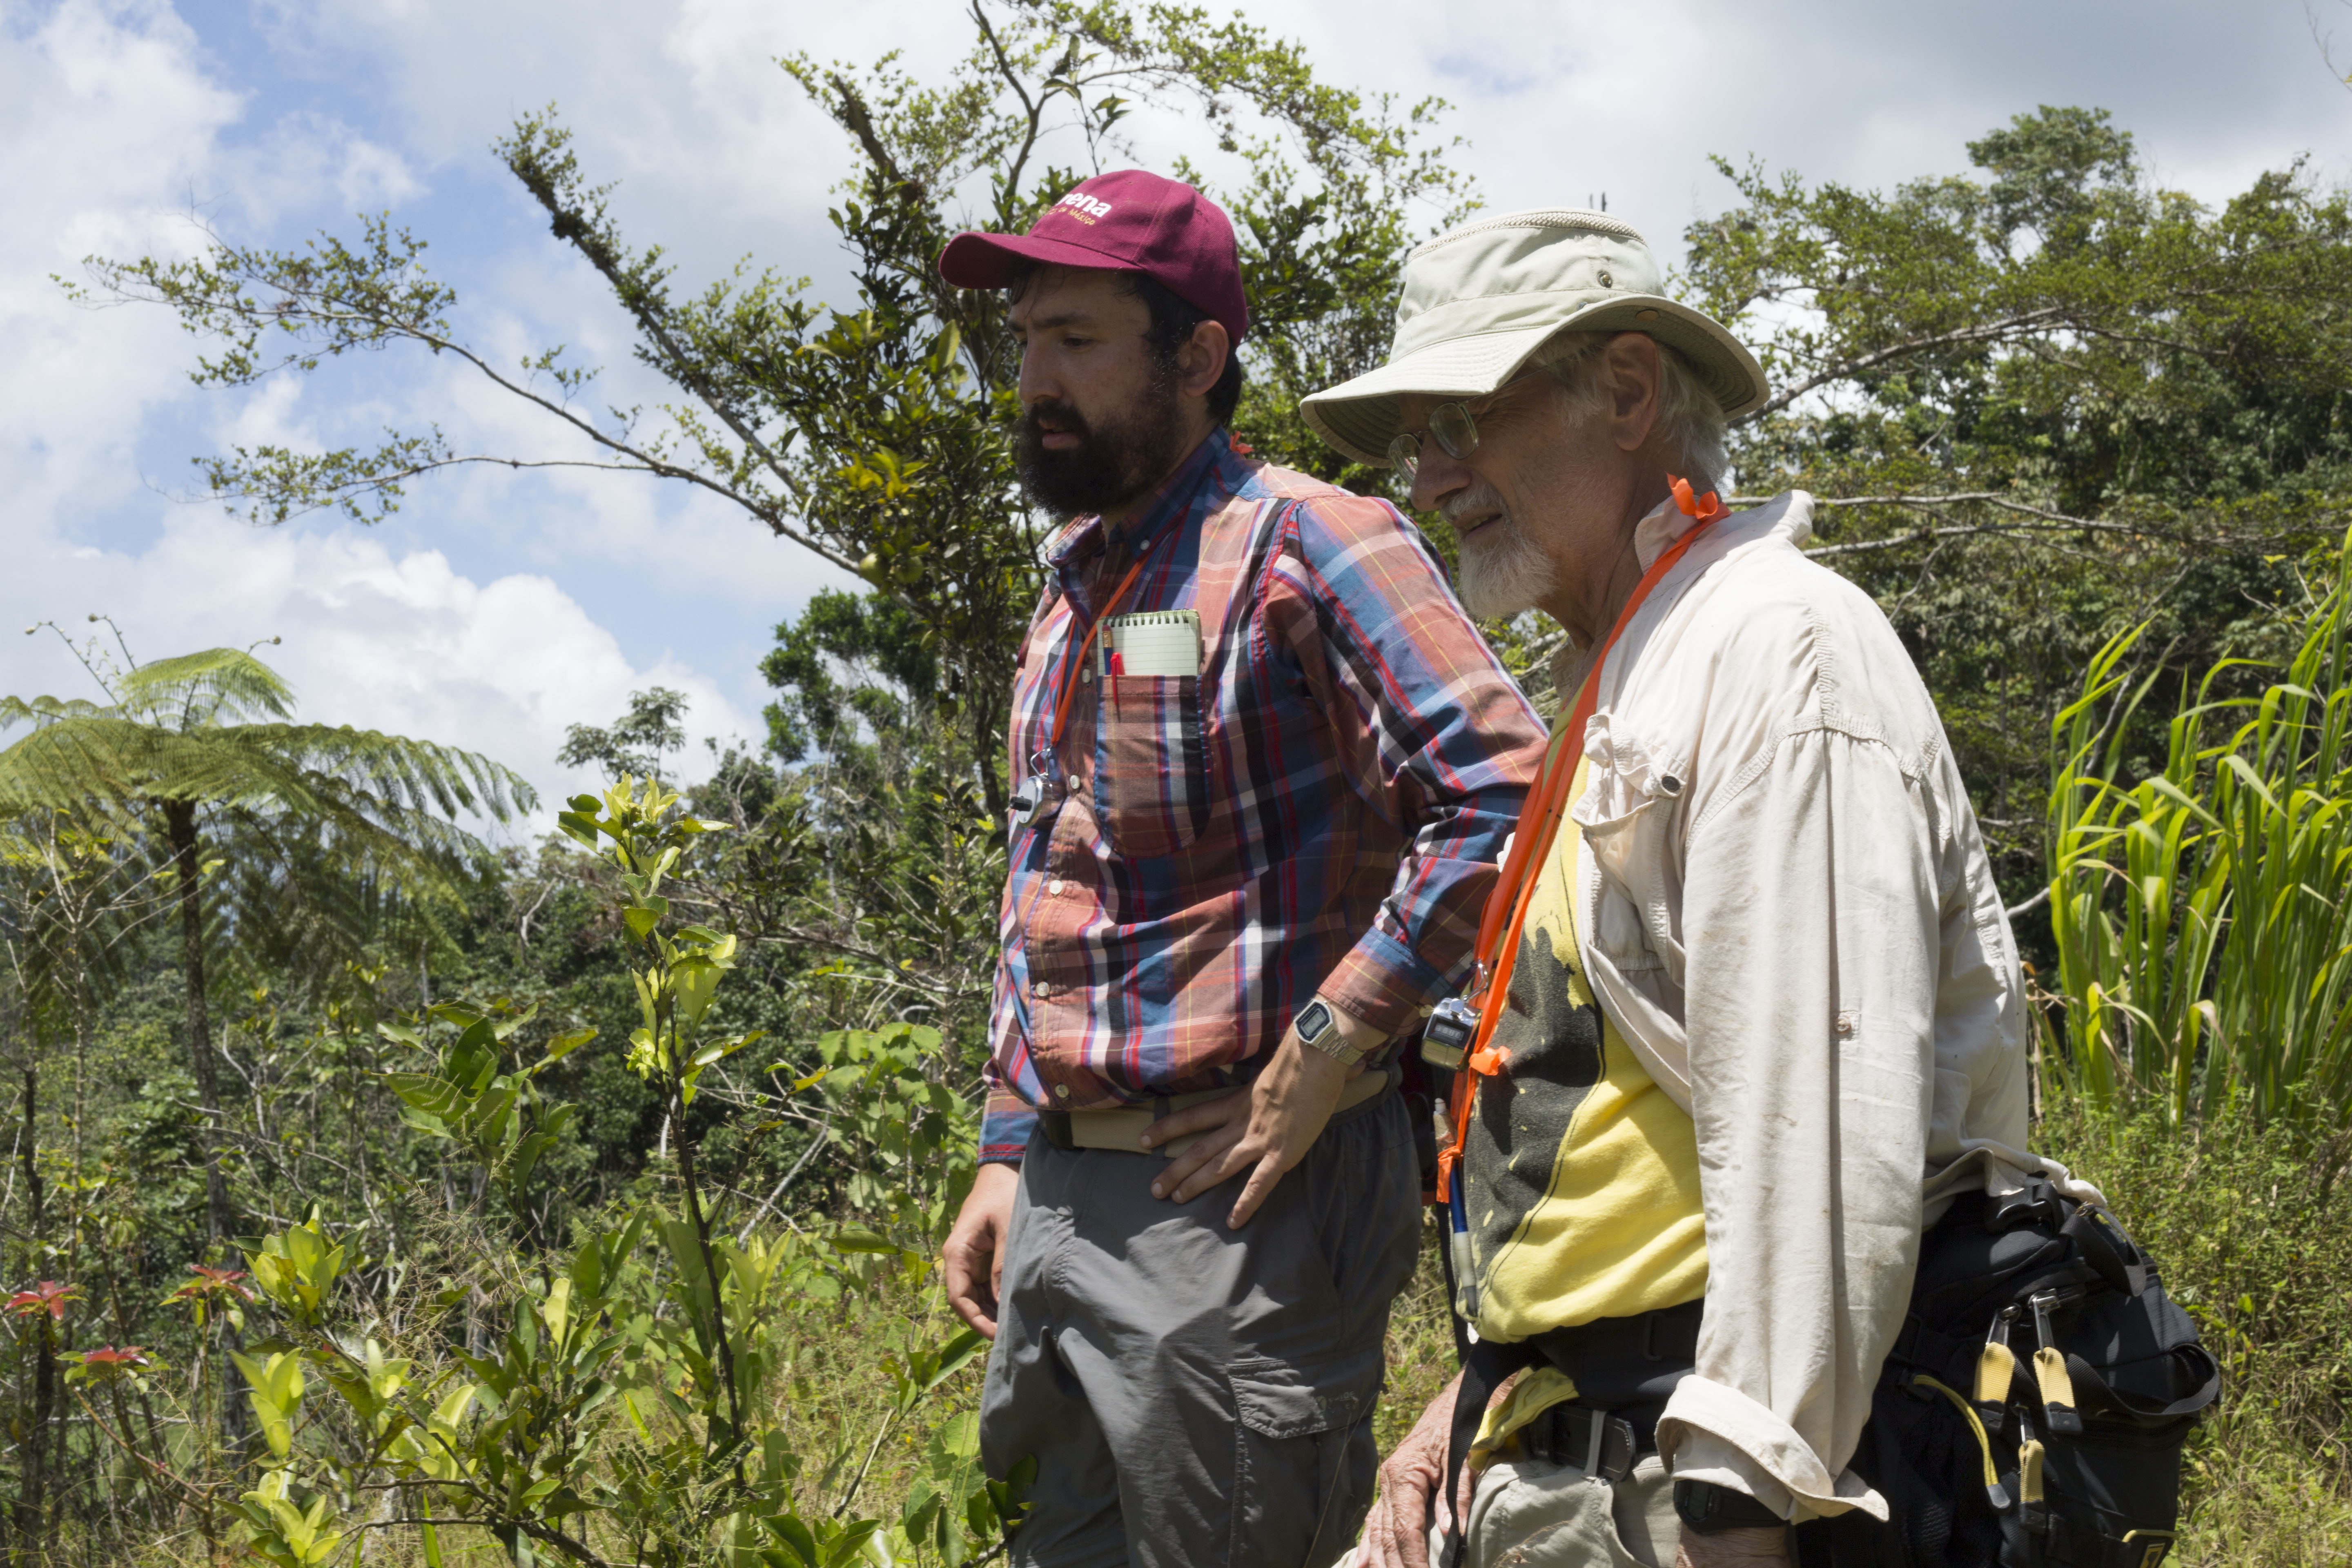 In July 2018, U-M doctoral student Zachary Hajian-Forooshani and U-M ecologist John Vandermeer survey a Puerto Rican coffee farm damaged less than a year earlier by Hurricane Maria. Image credit: Levi Stroud, U-M College of LSA